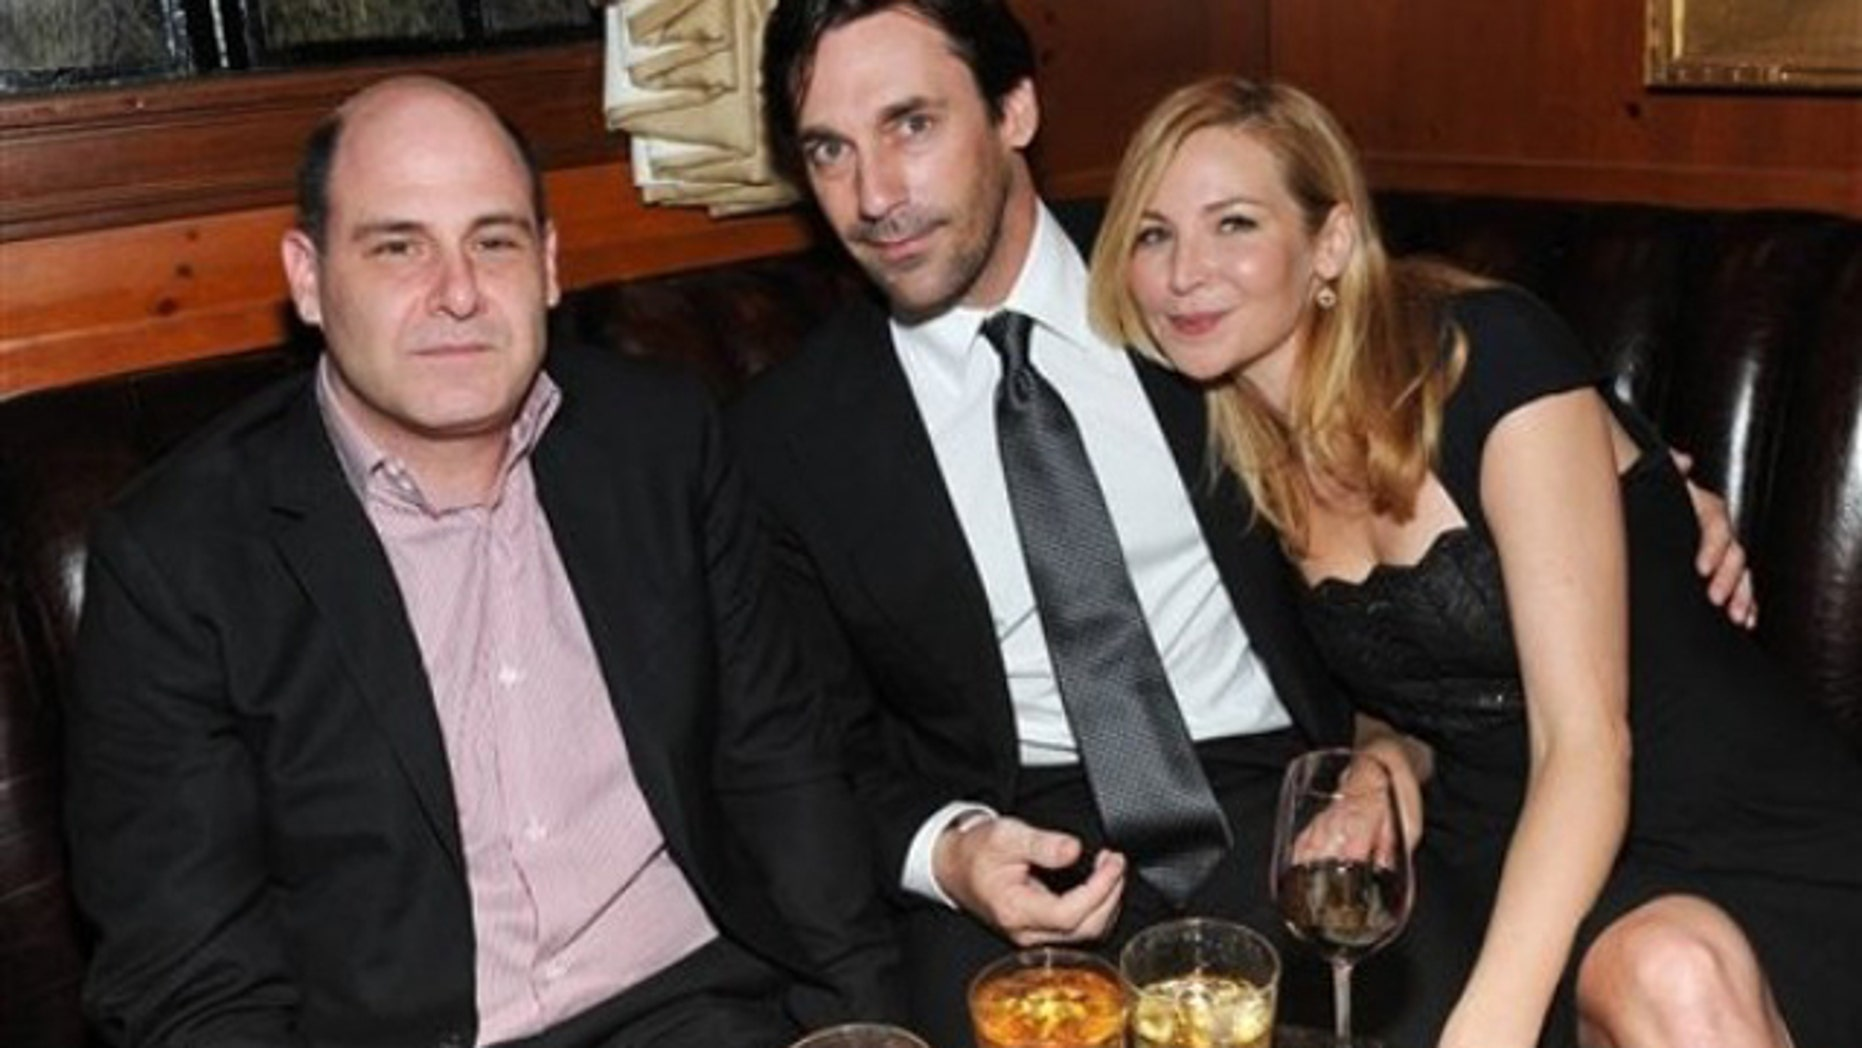 Series creator and executive producer Matthew Weiner, left, and actor Jon Hamm and actress Jennifer Westfeldt attend the 'Mad Men' Season 4 Finale screening at the 21 Club in New York City